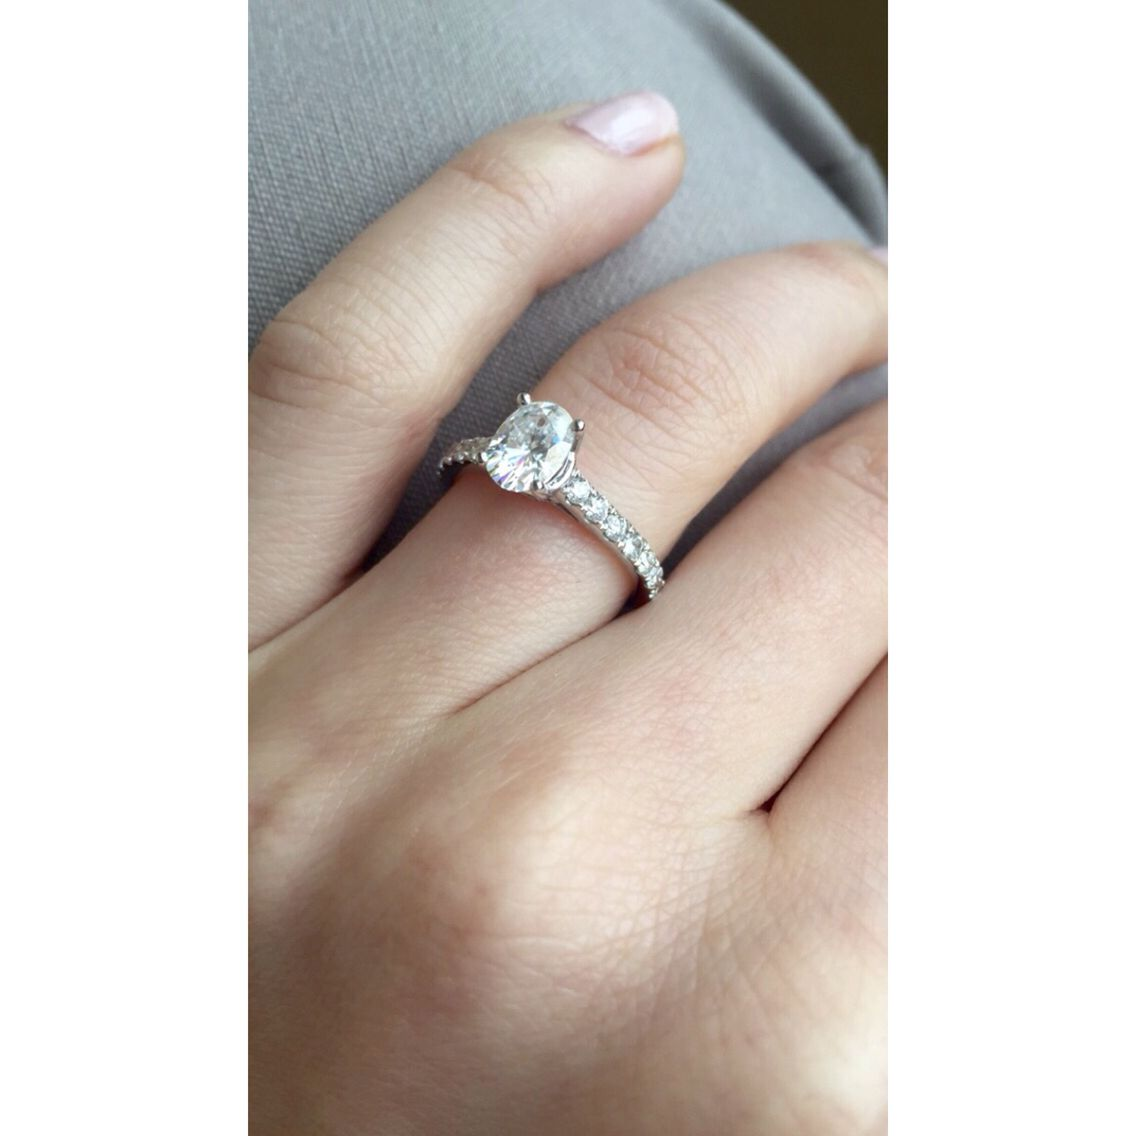 1 1 Carat Oval Solitaire Engagement Ring Solitaire Engagement Ring Oval Solitaire Engagement Ring Engagement Rings Oval